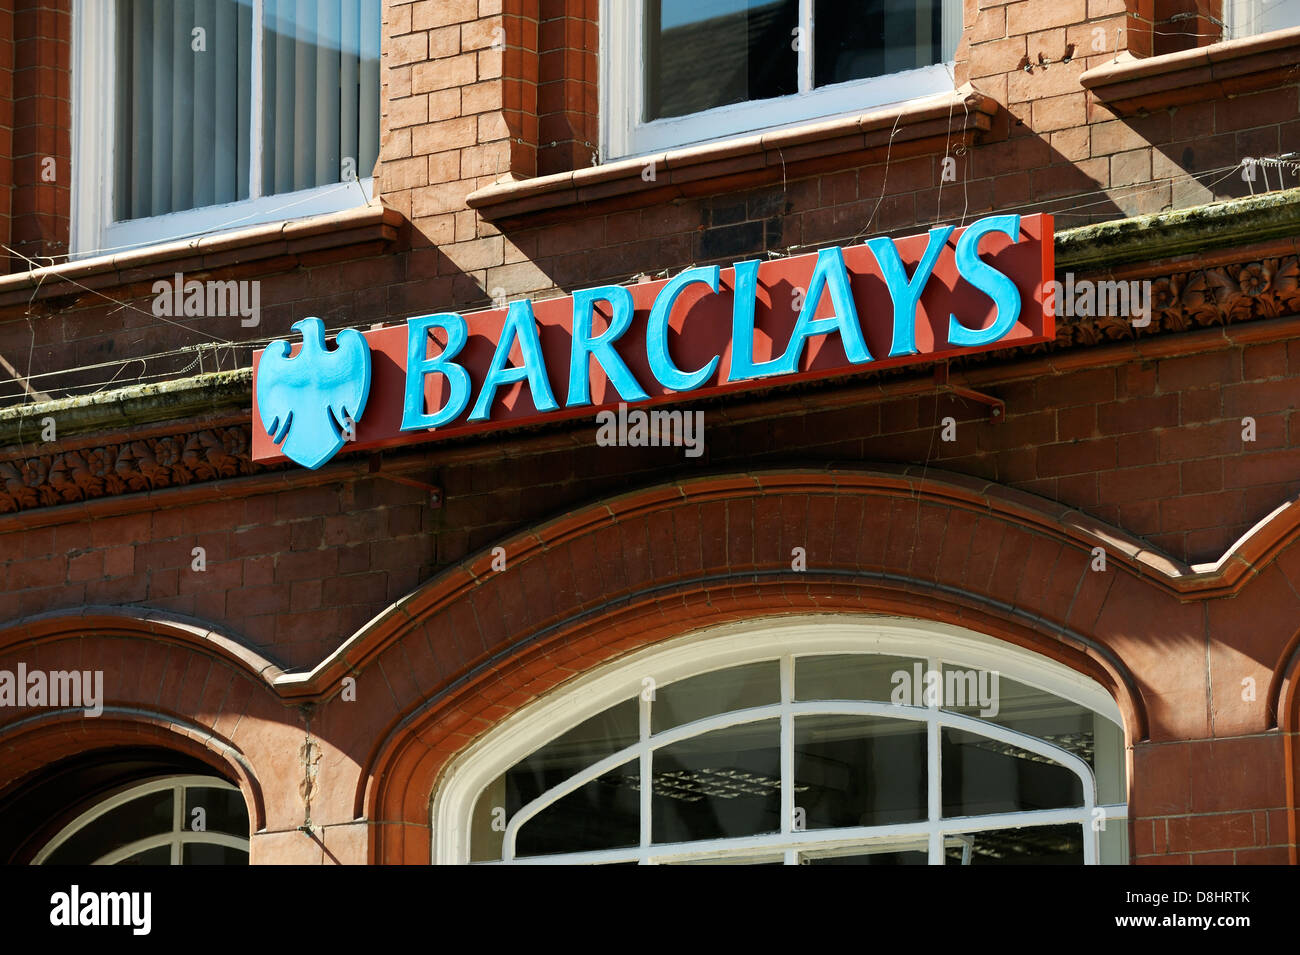 Barclays logo high street bank sign outside branch of Barclays bank in the Shropshire town of Ludlow, England - Stock Image